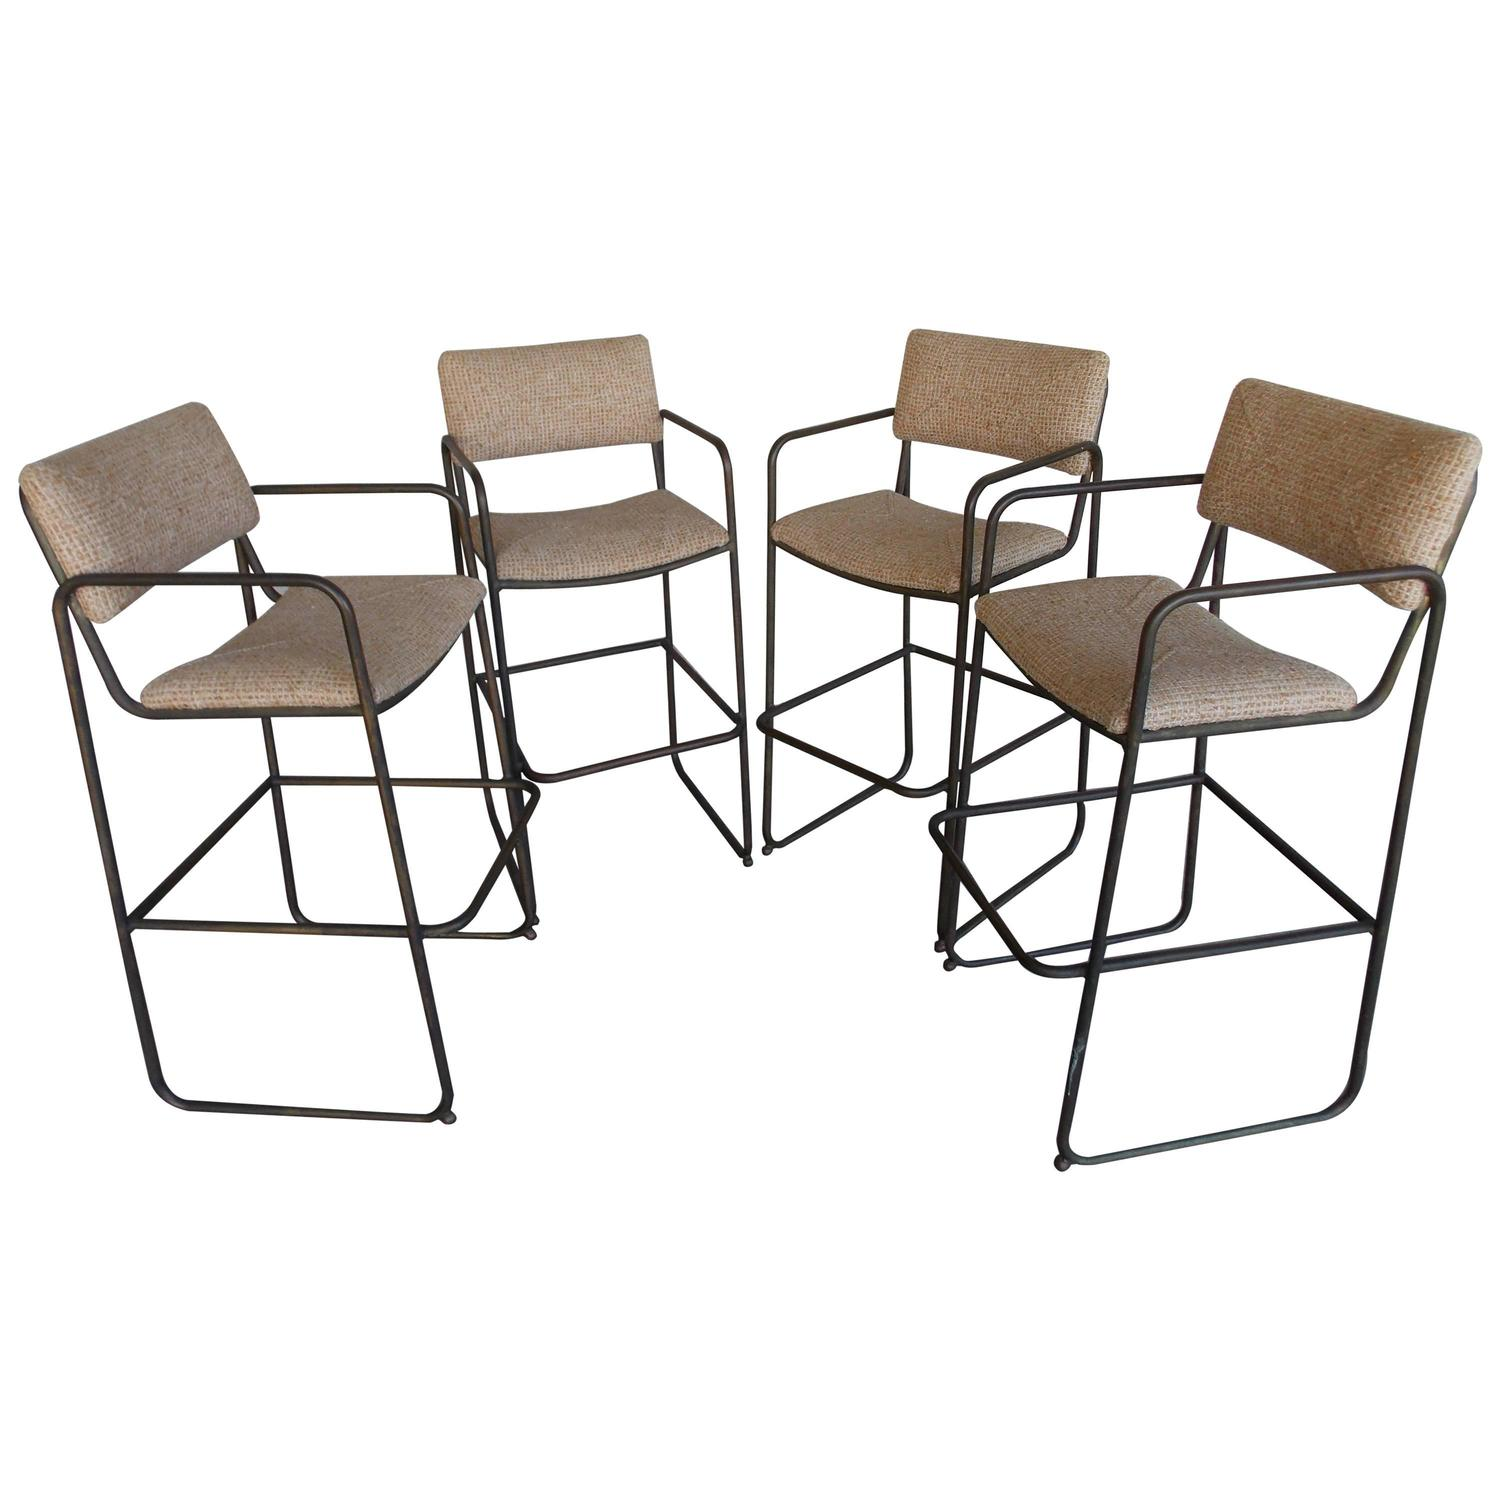 mccabe camping chairs high back office chair covers kipp stewart bronze bar stools for terra california design